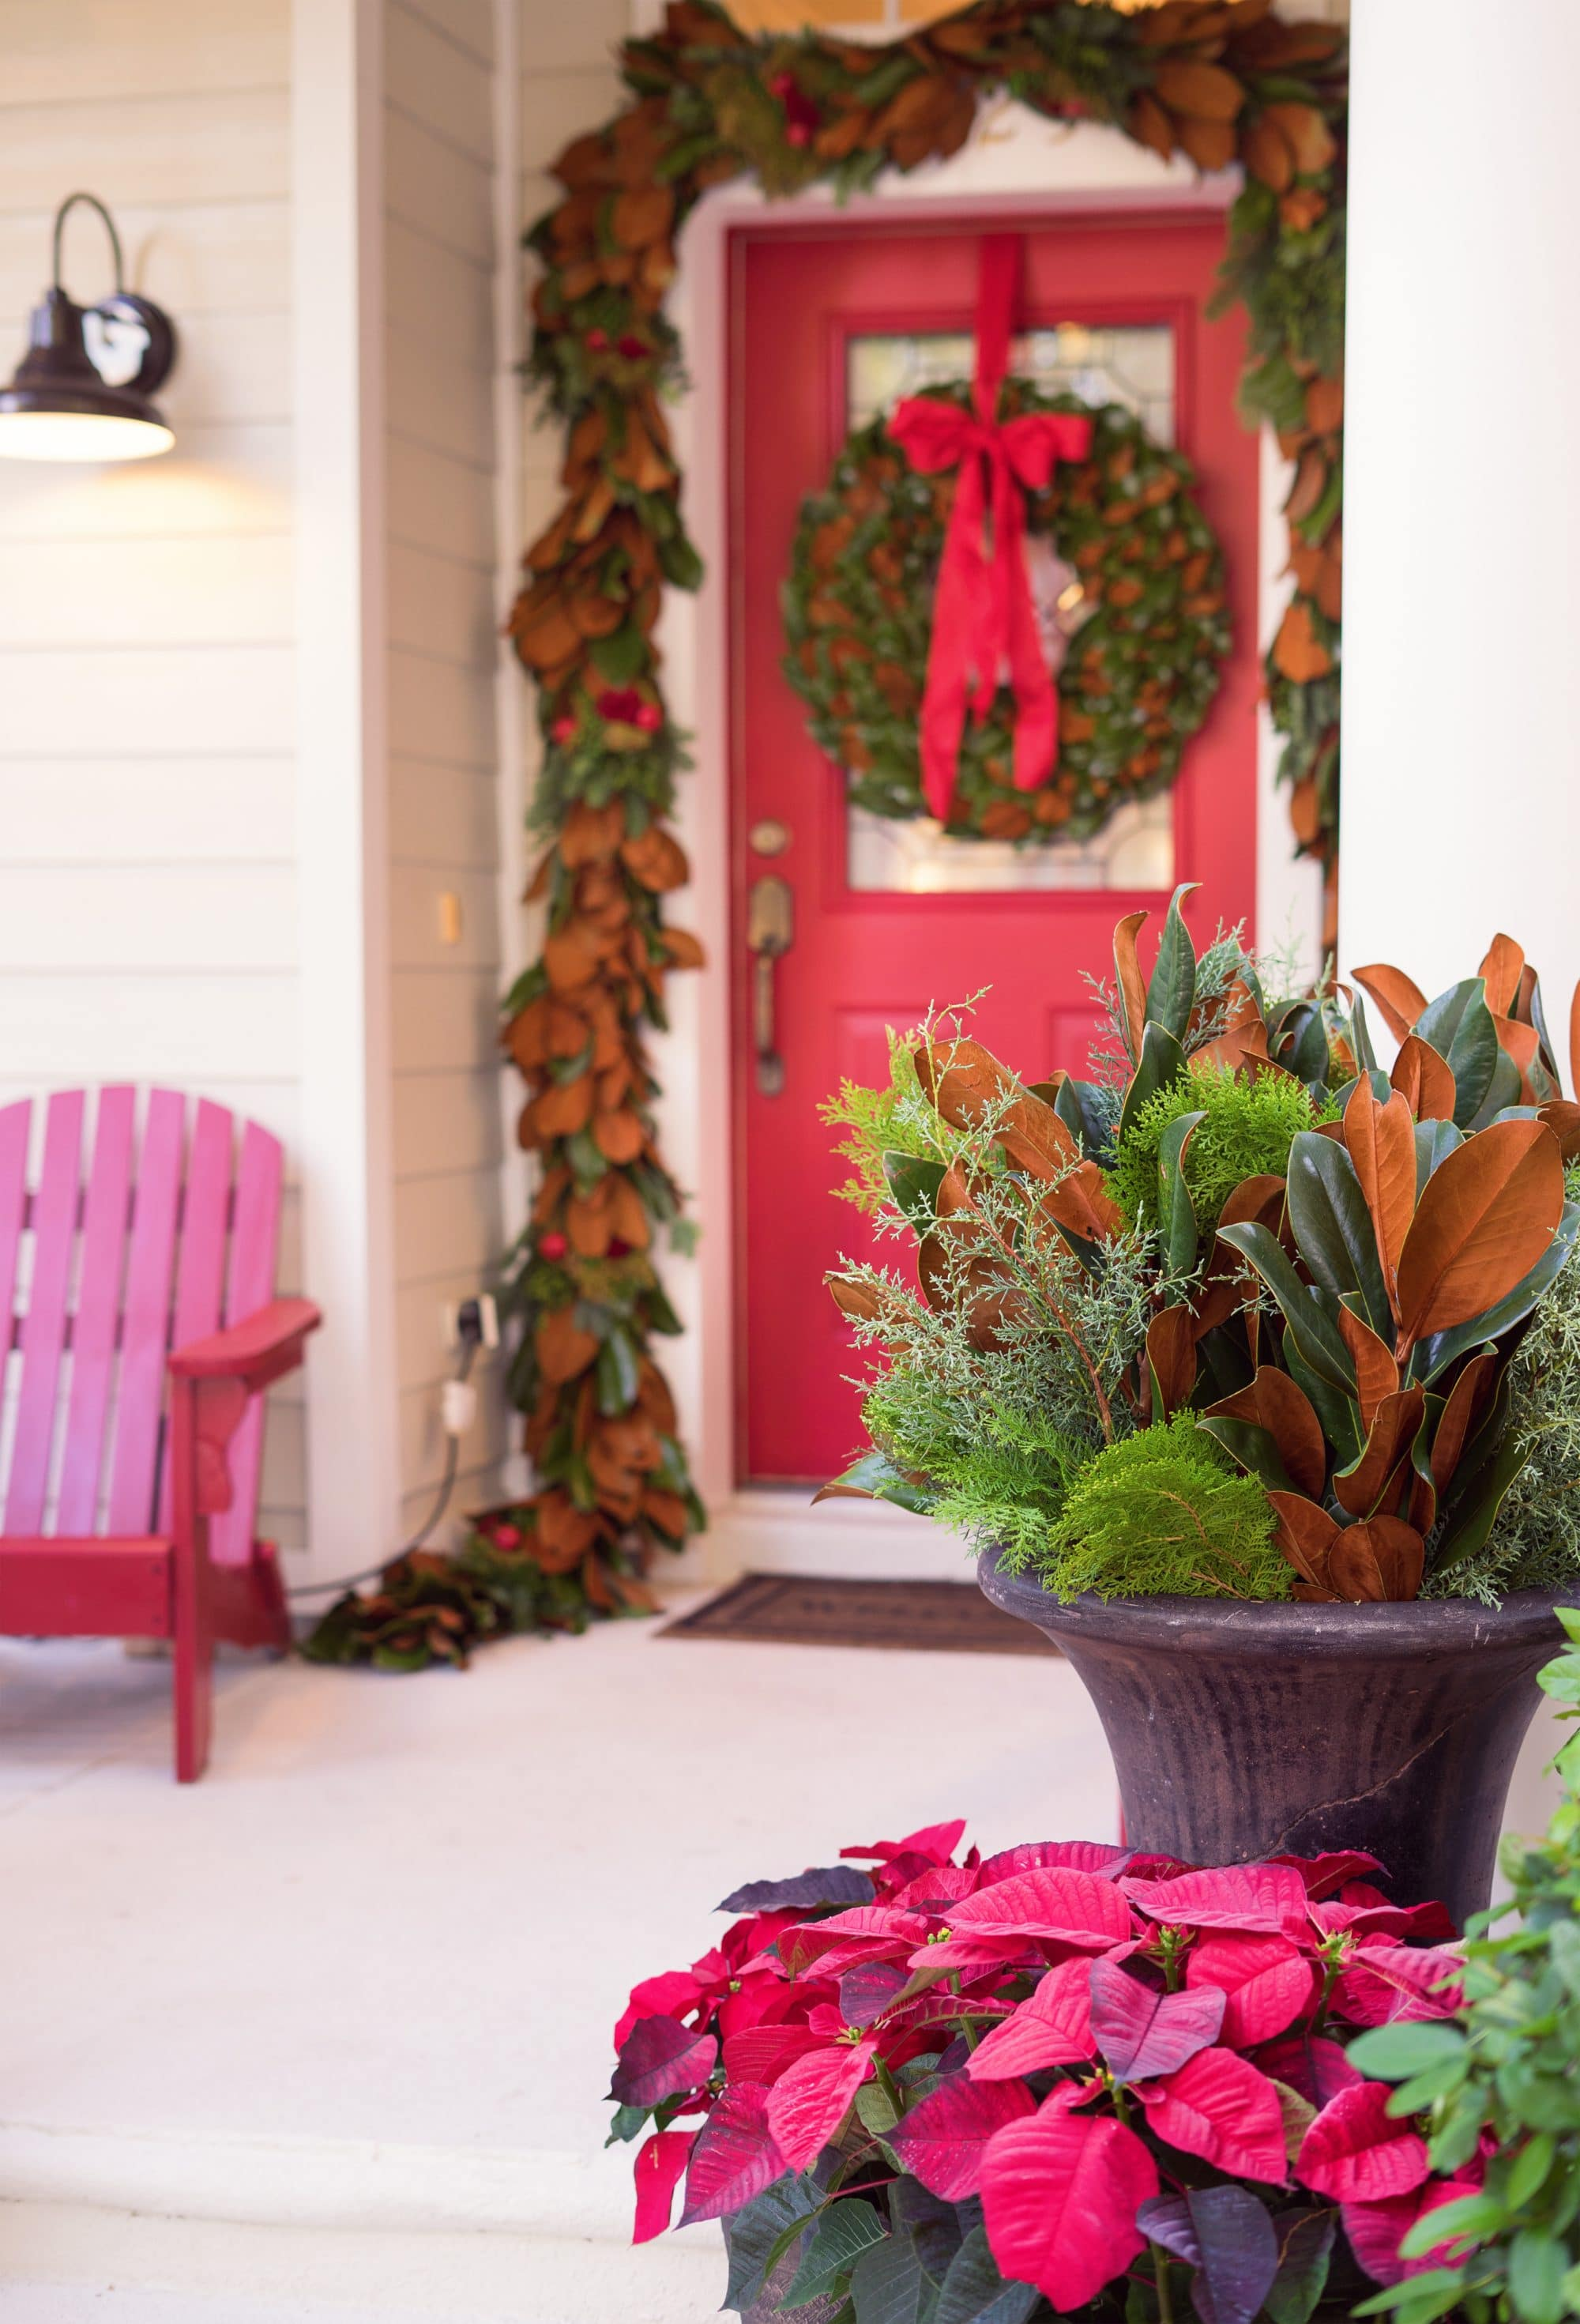 Blogger Ashley Brooke's 4 Steps to Fresh Front Door Holiday Decor | www.ashleybrookedesigns.com | Featuring: The Magnolia Company Holiday Decor